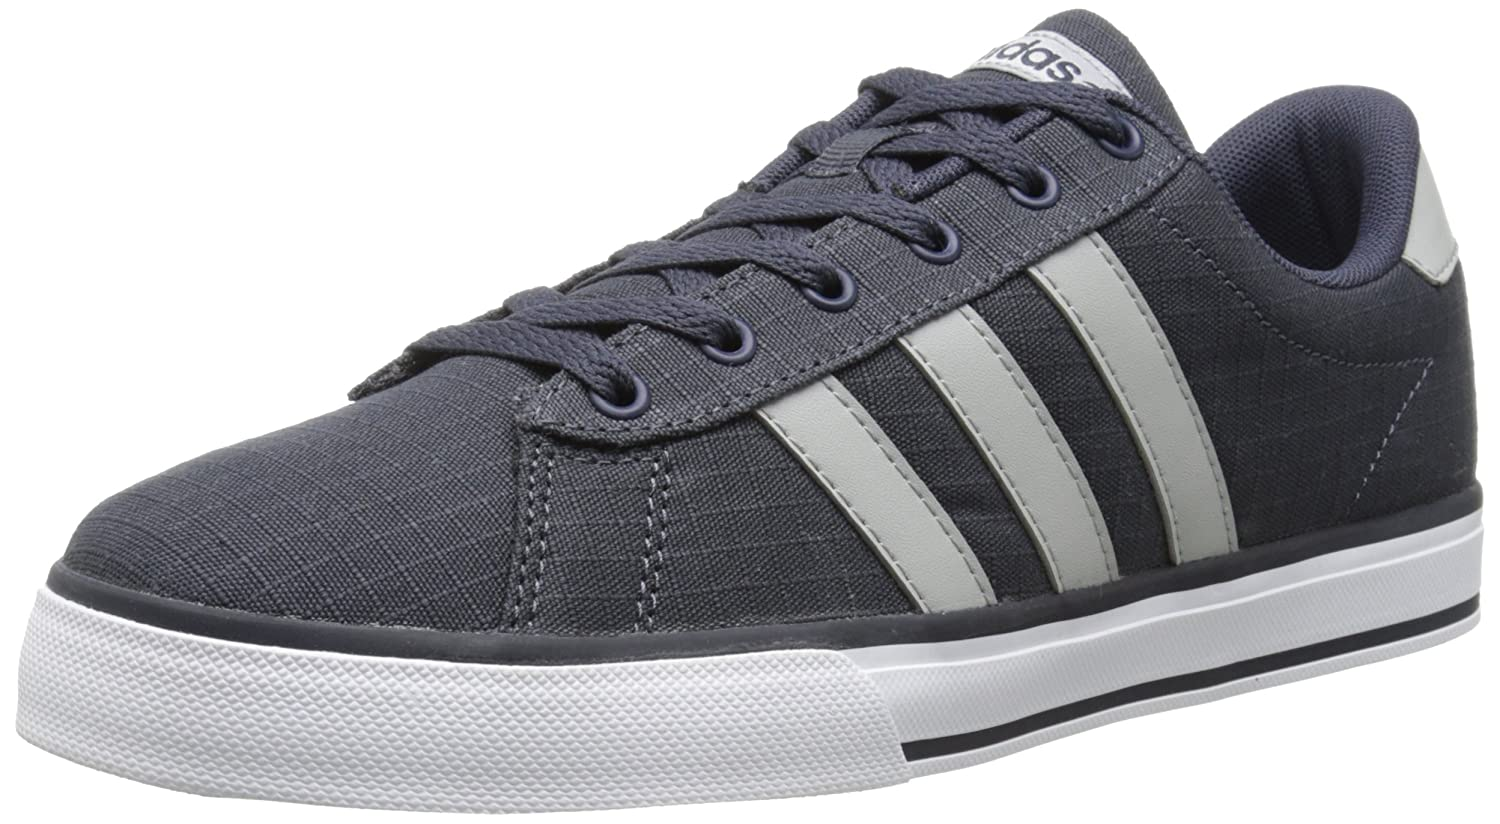 adidas NEO Men's SE Daily Vulc Lifestyle Skateboarding Shoe B00II2Z9RG 9.5 M US|Navy/Clear Onix Grey/White